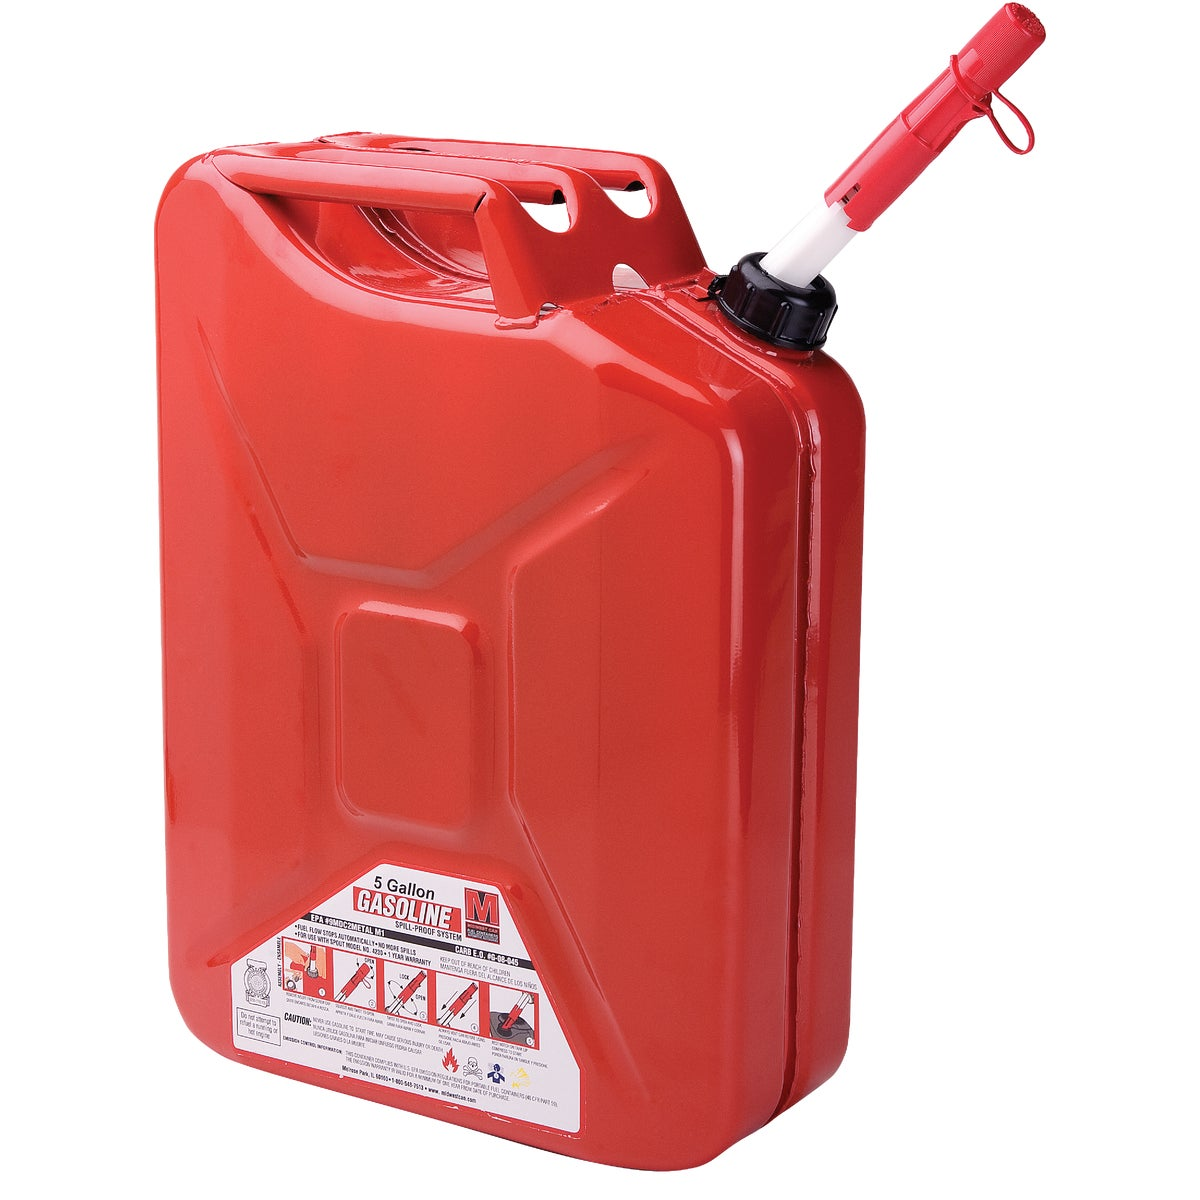 5 GALLON CARB JERRY CAN - 85043 by Plastics Group